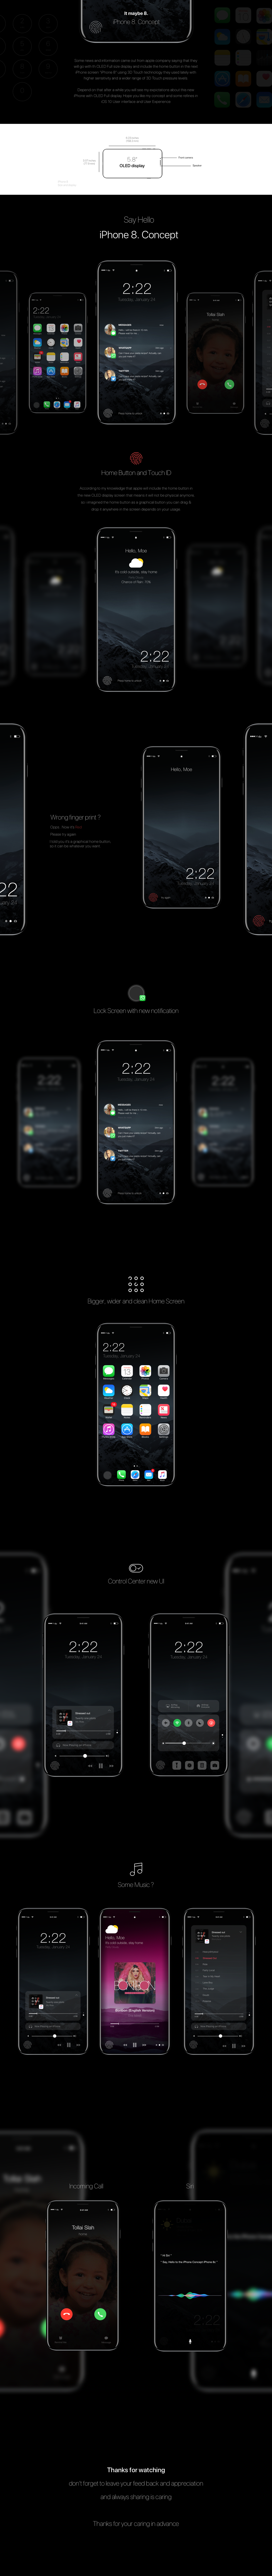 Product Design and UI/UX: iPhone 8 Concept